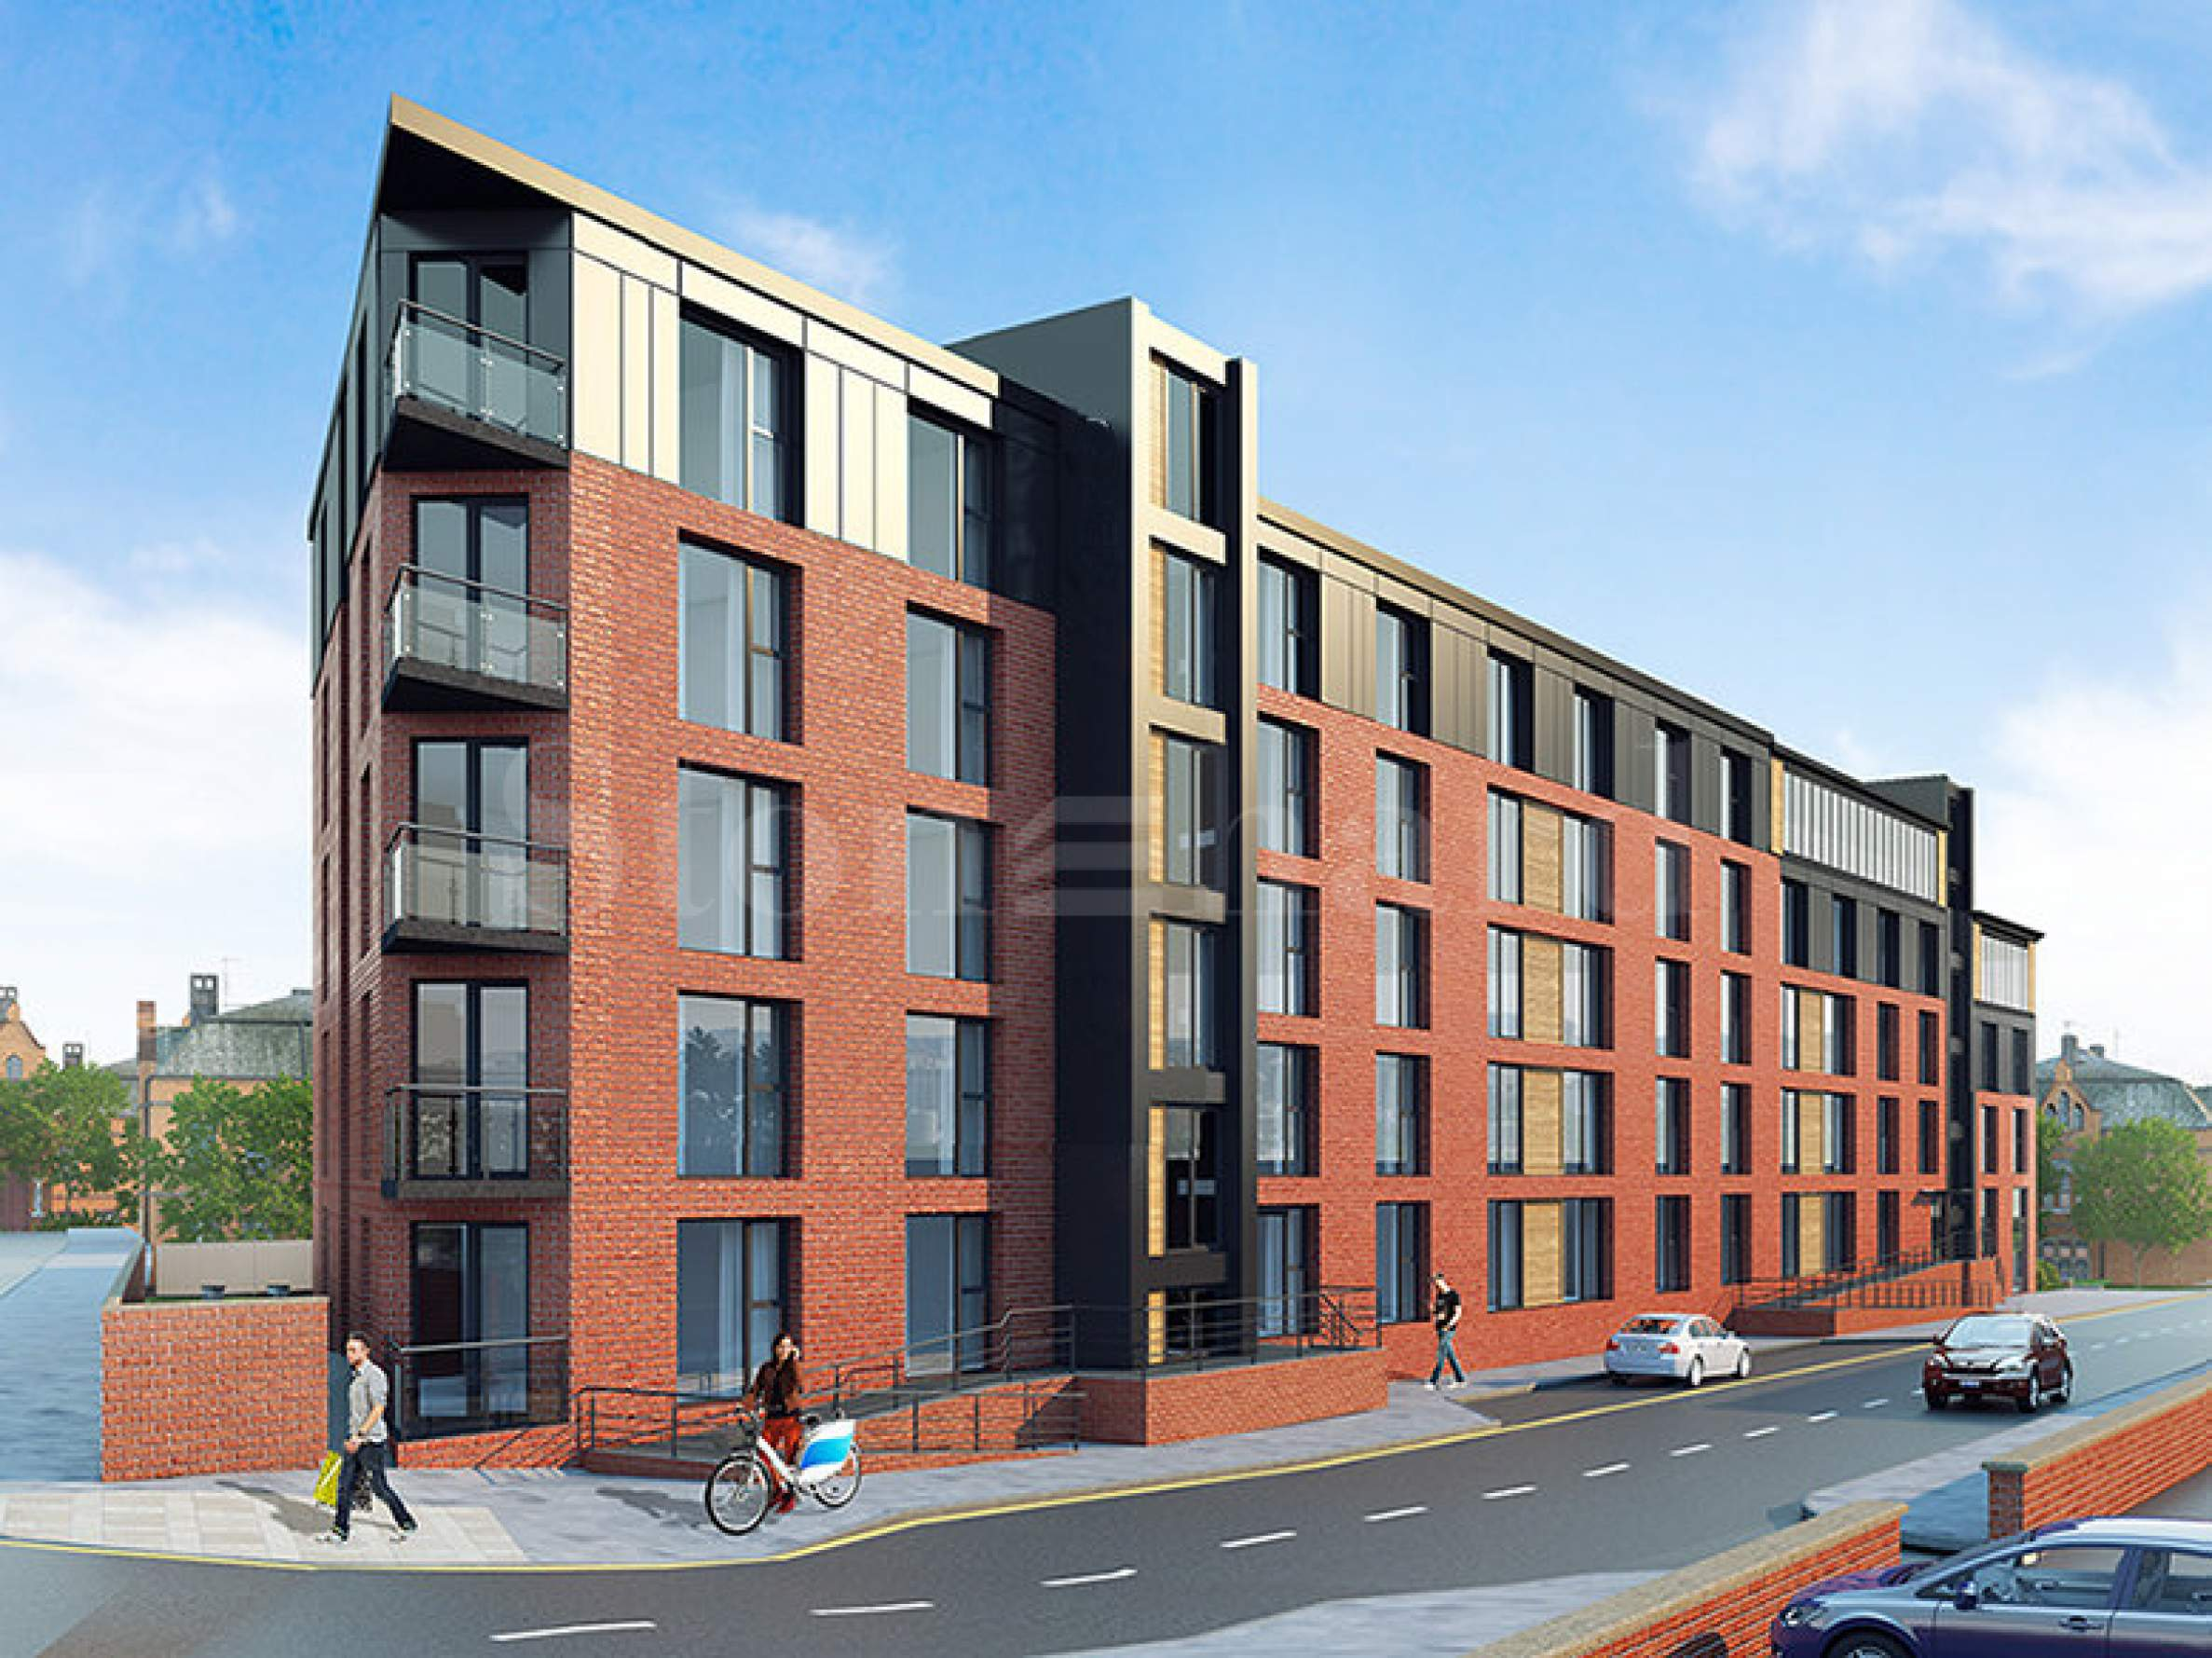 Modern Student Accommodation in the University city of Sheffield1 - Stonehard